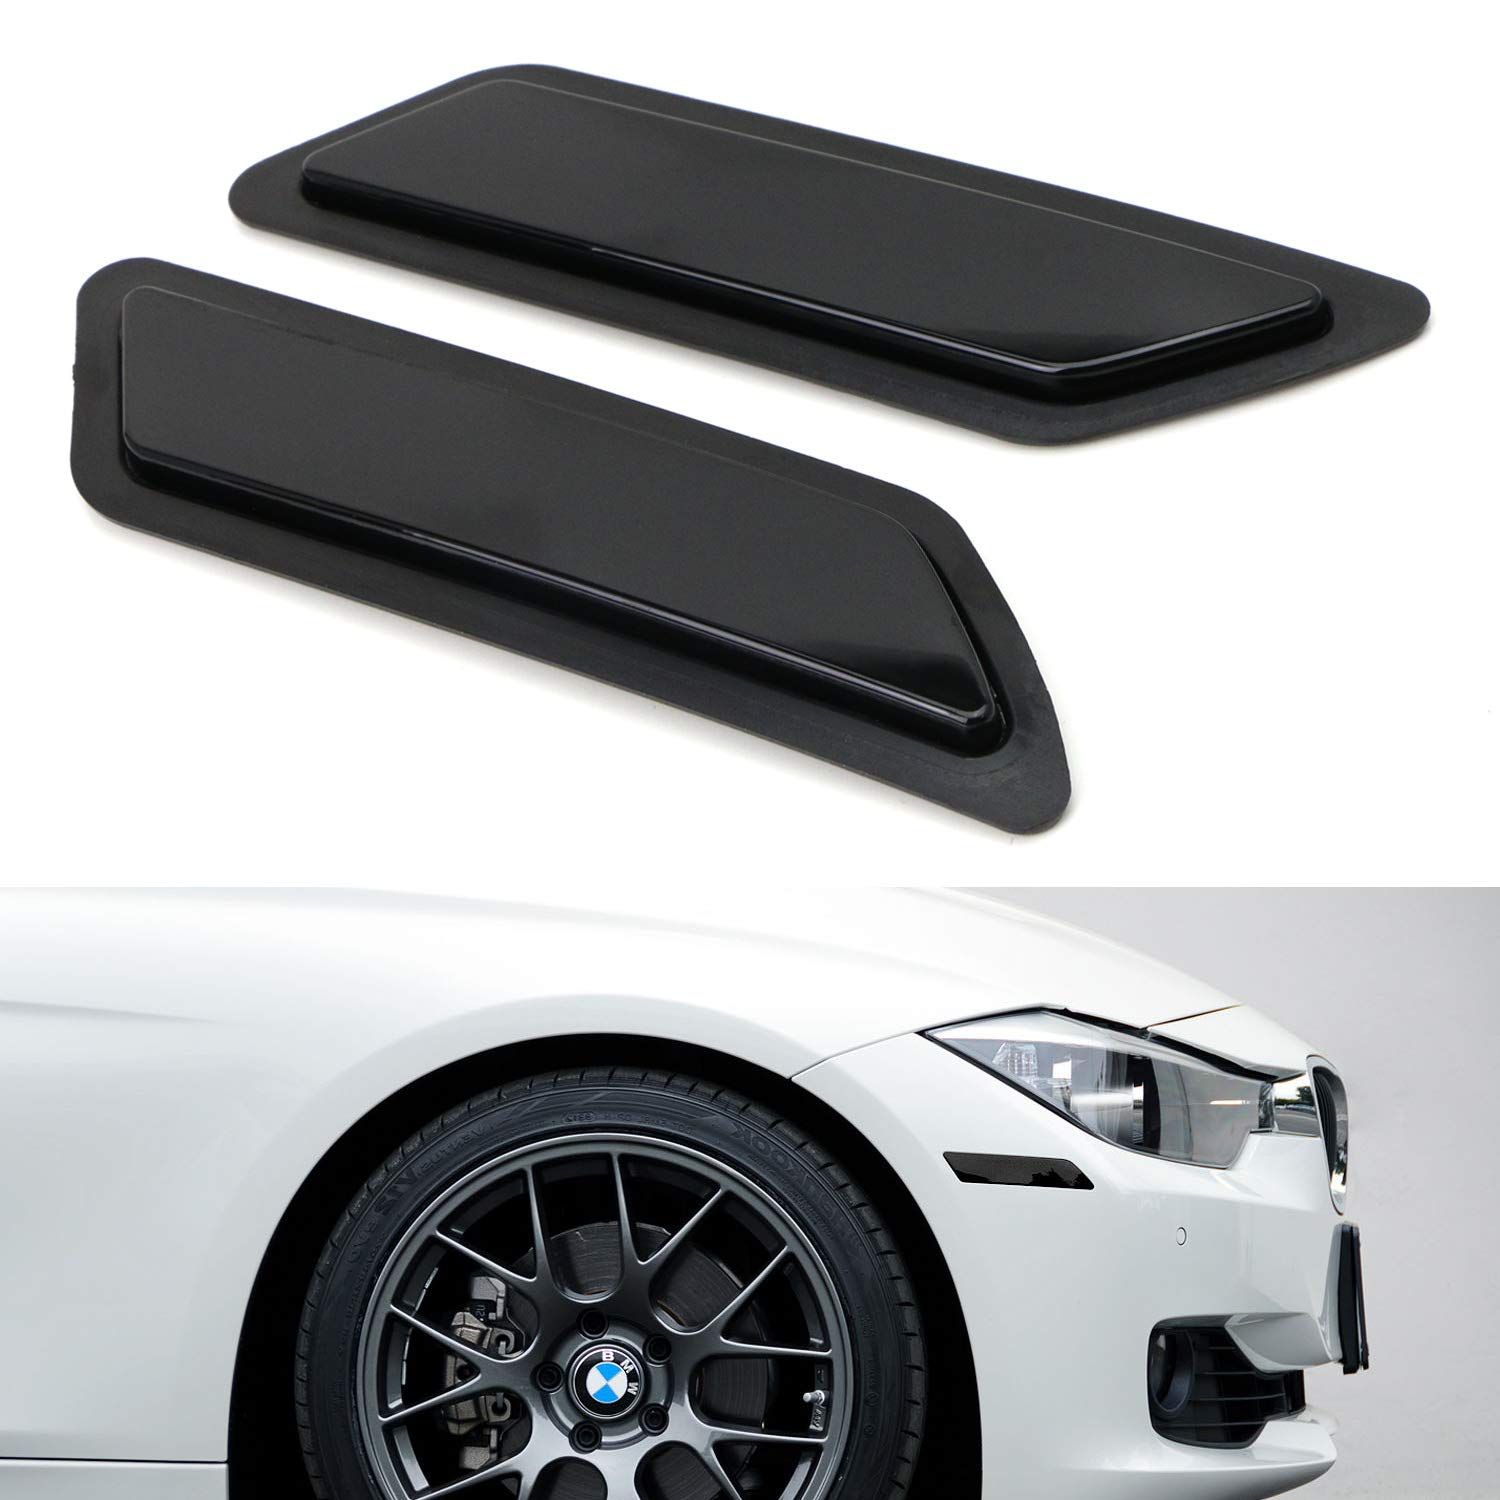 iJDMTOY Glossy Black Smoked Lens Front Bumper Side Markers For 2016-2018 BMW F30 F31 LCI 3 Series 320i 340i Replace OEM Amber Reflector Assy F32 4 Series 420i 428i 435i 440i